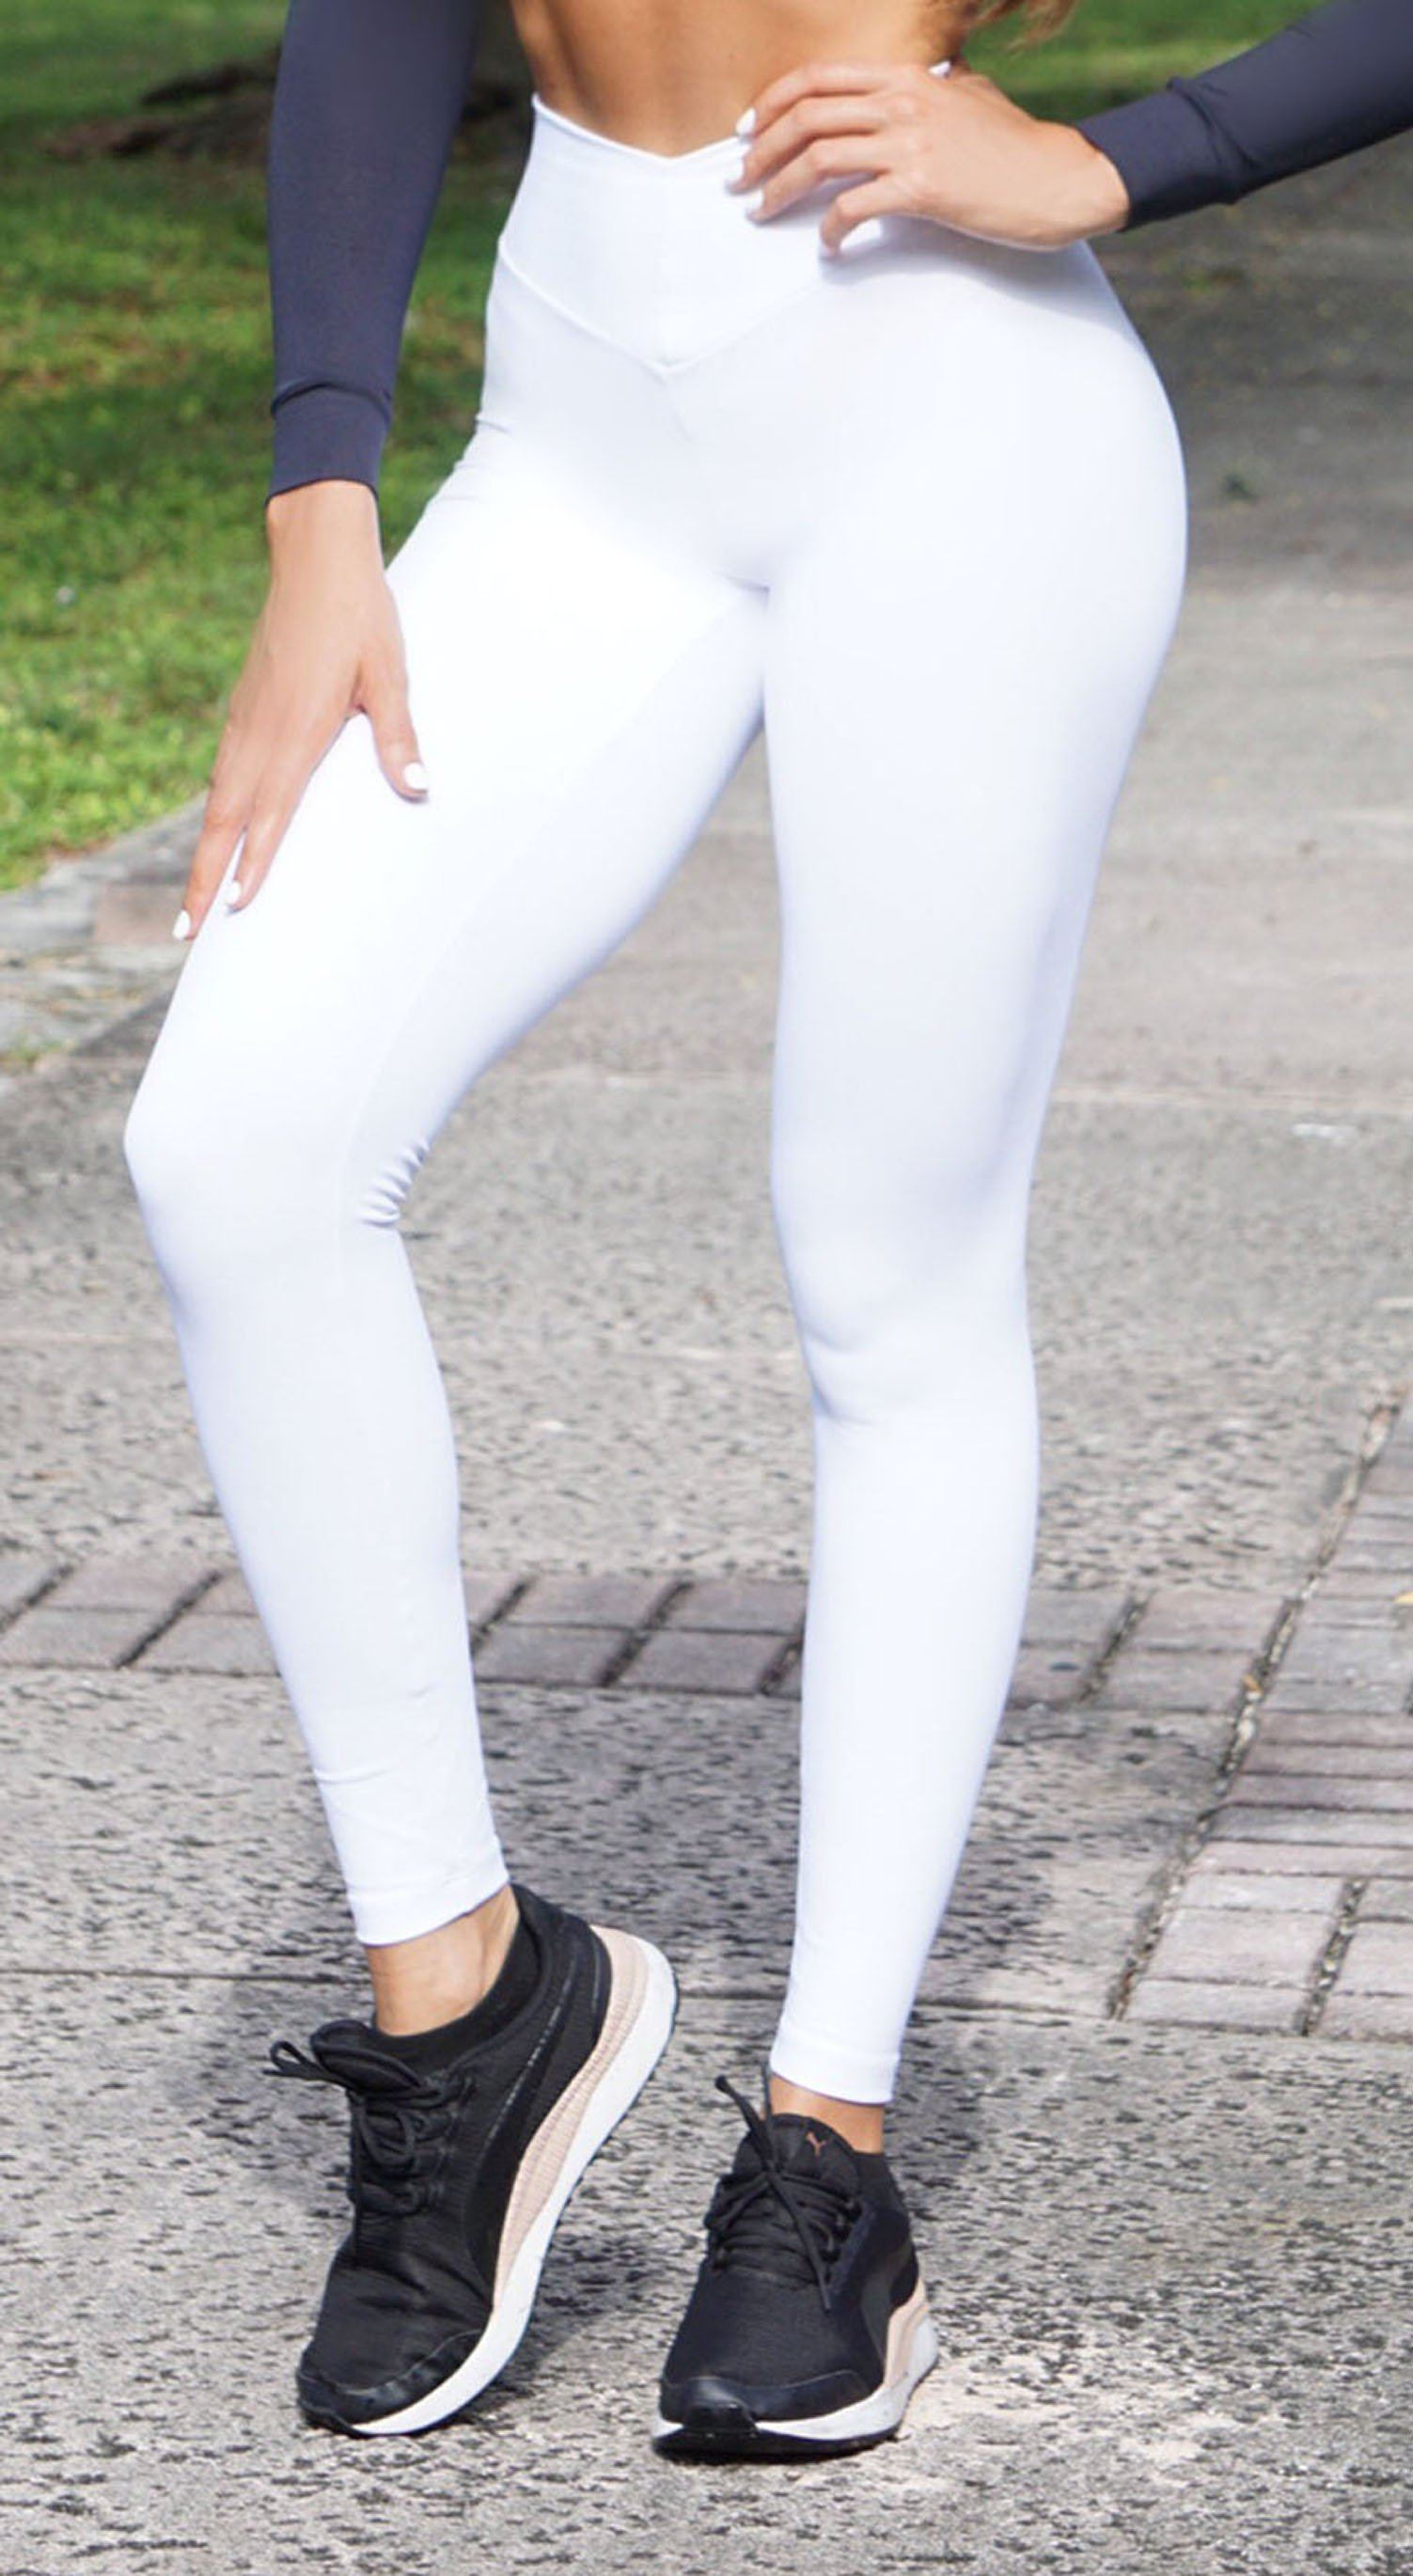 Brazilian Workout Legging - Scrunch Booty Lift! Compression White